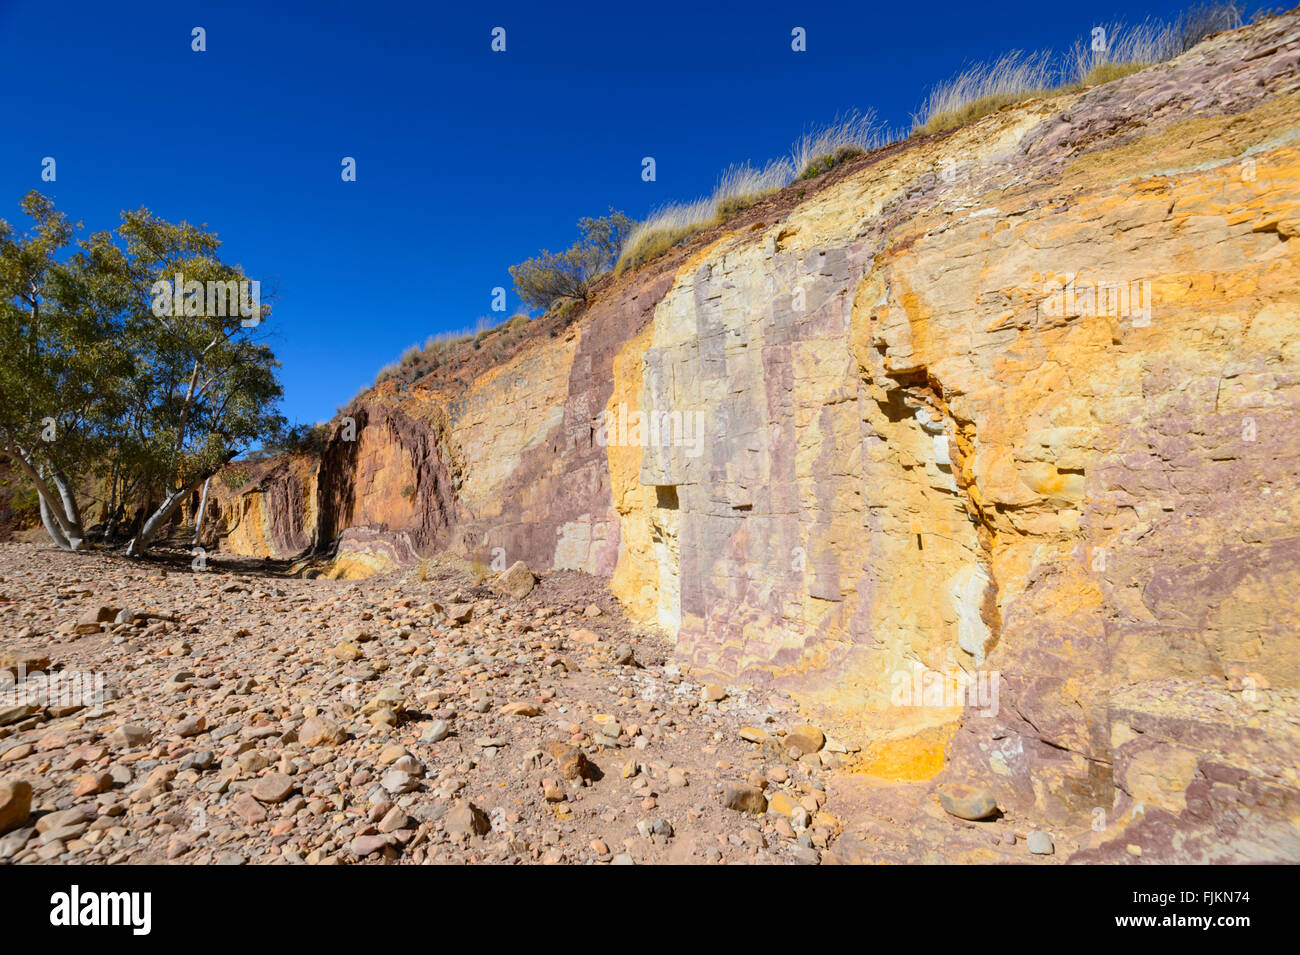 Ochre Pits, West MacDonnell Ranges, Northern Territory, Australia - Stock Image